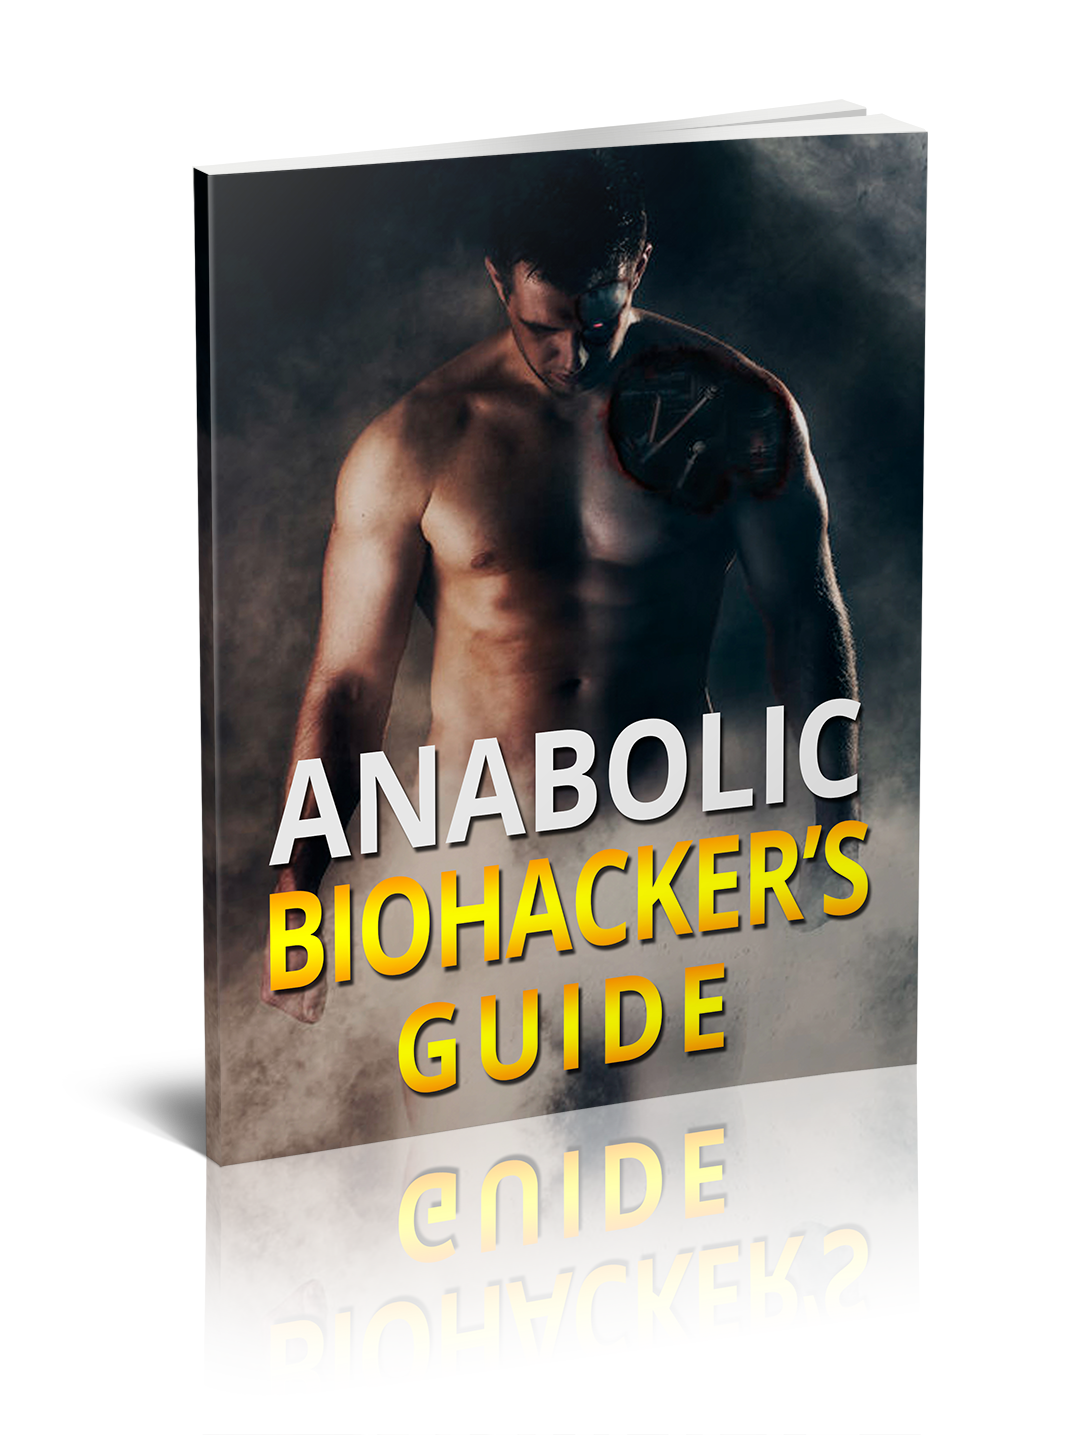 Thank You Anabolic Biohackers Guide – Anabolic Running